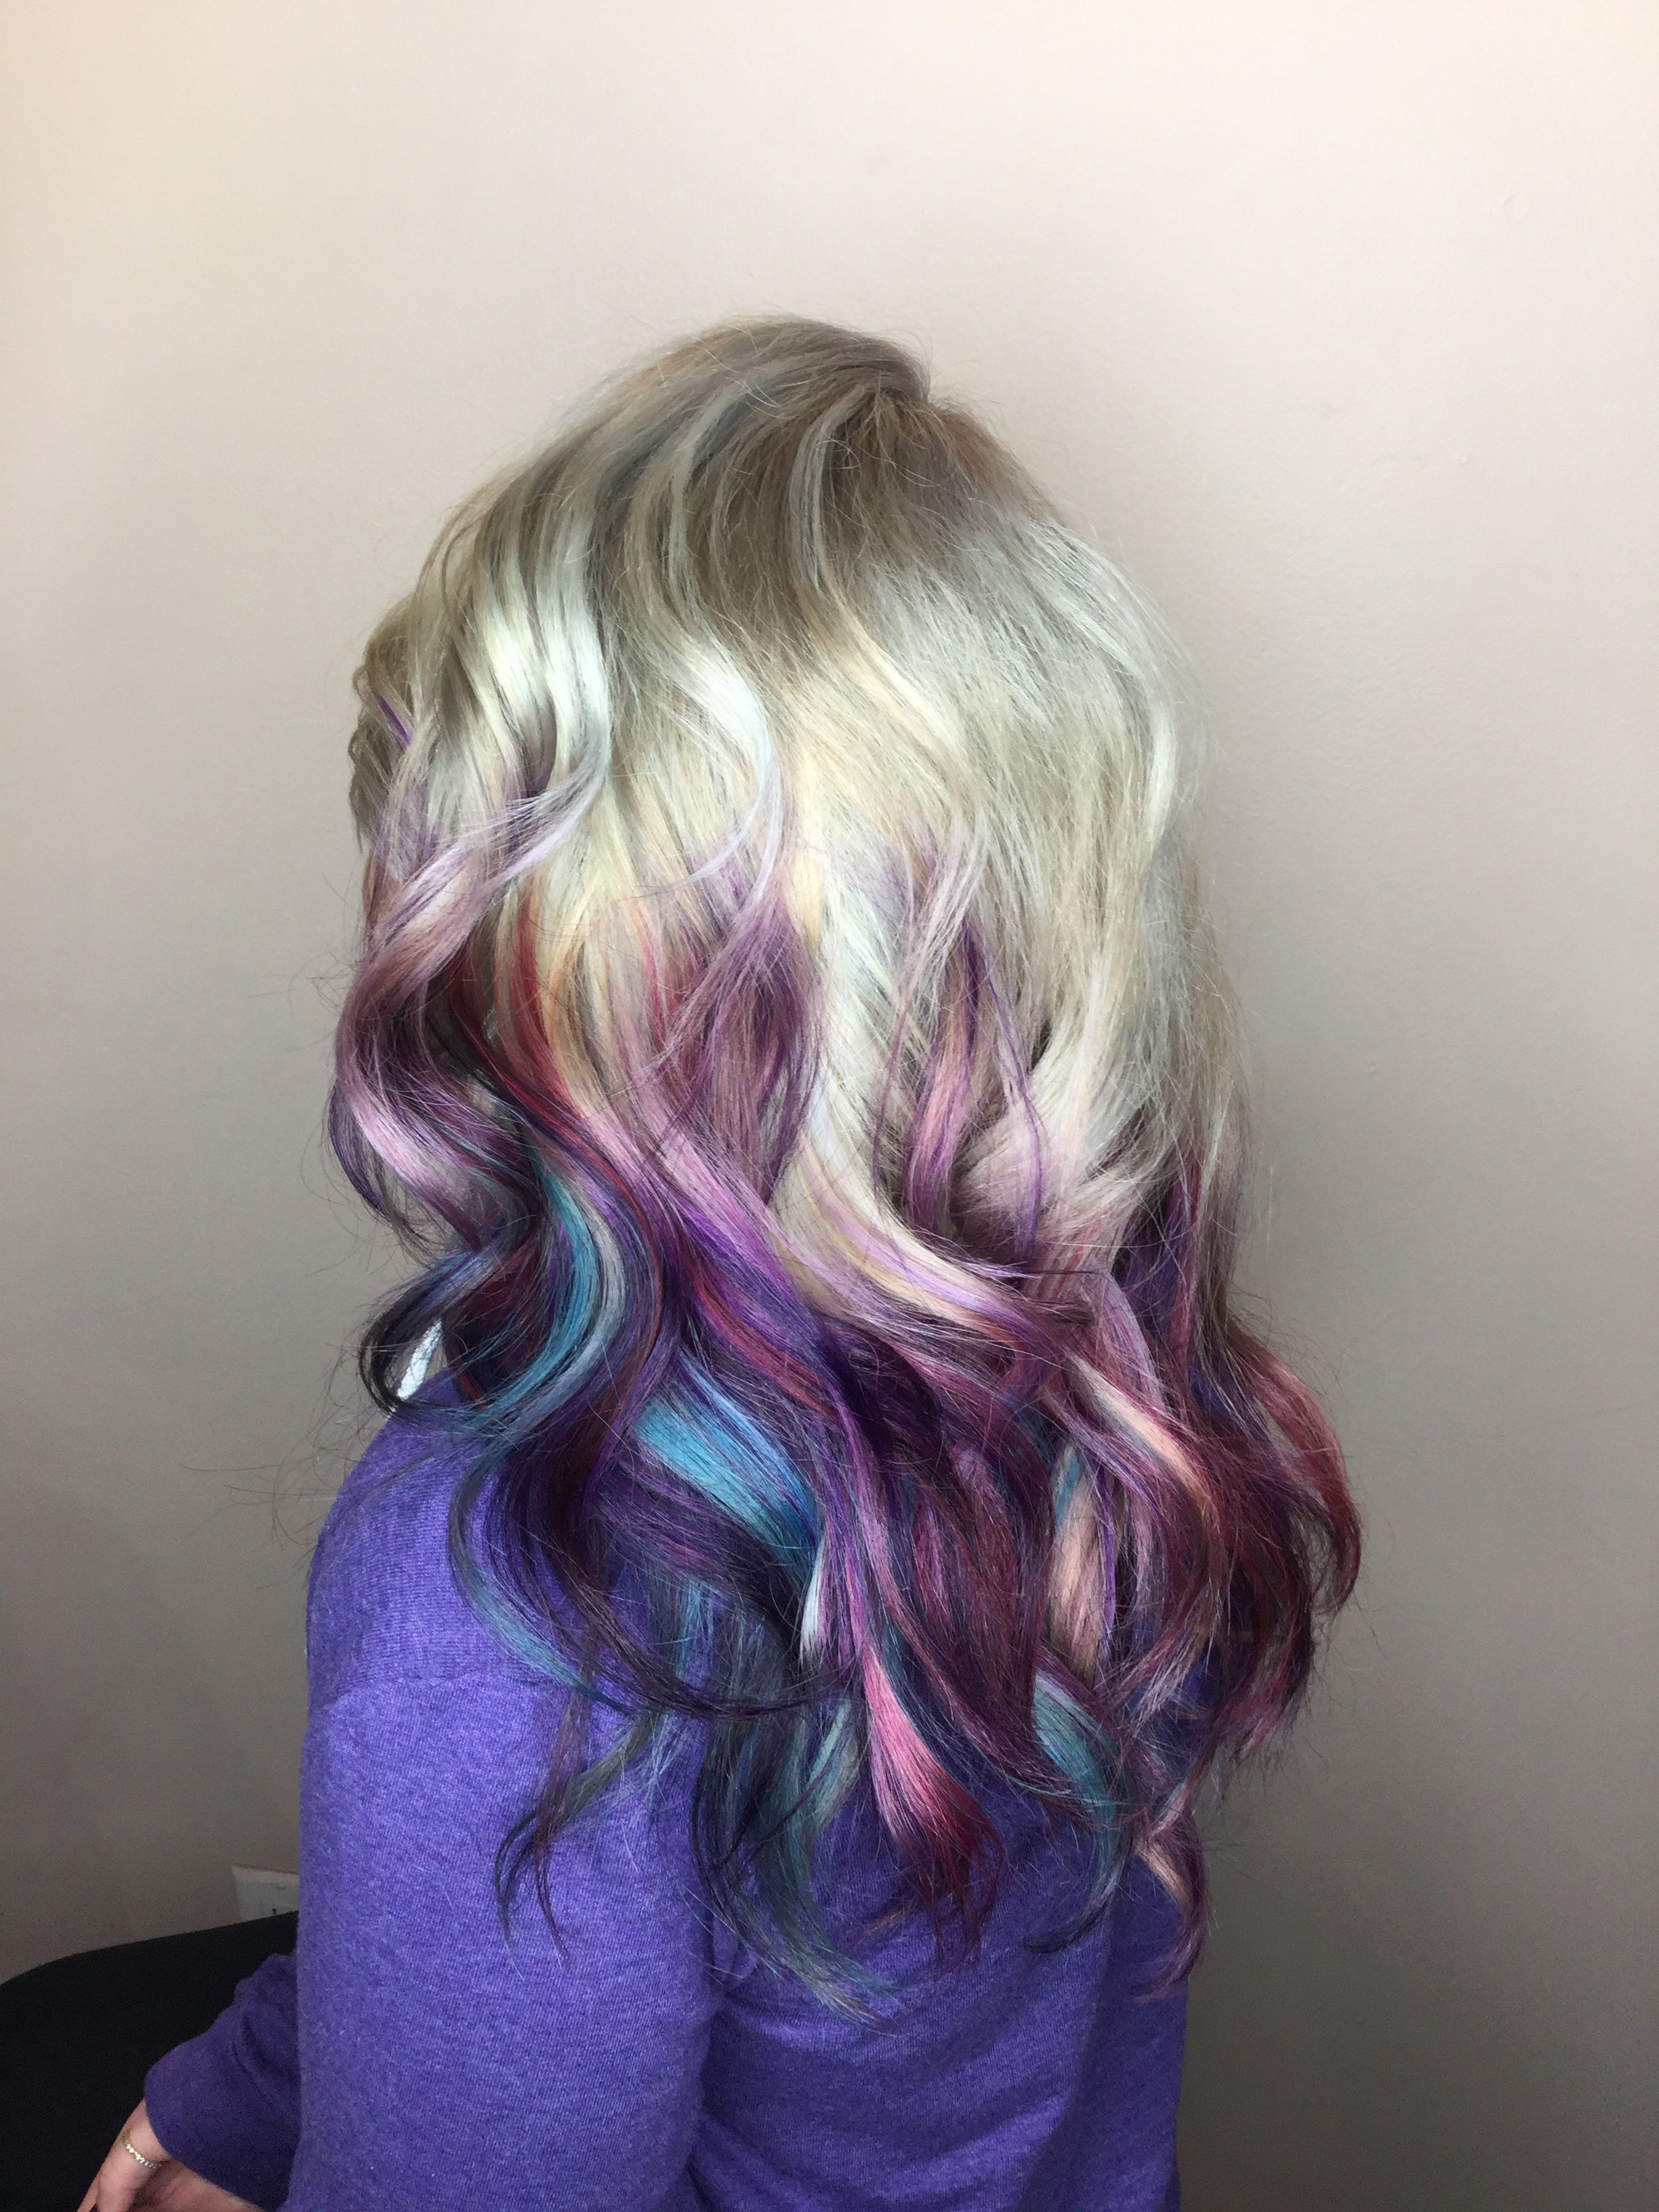 White blonde with galaxy colors | Hair ideas in 2019 ...